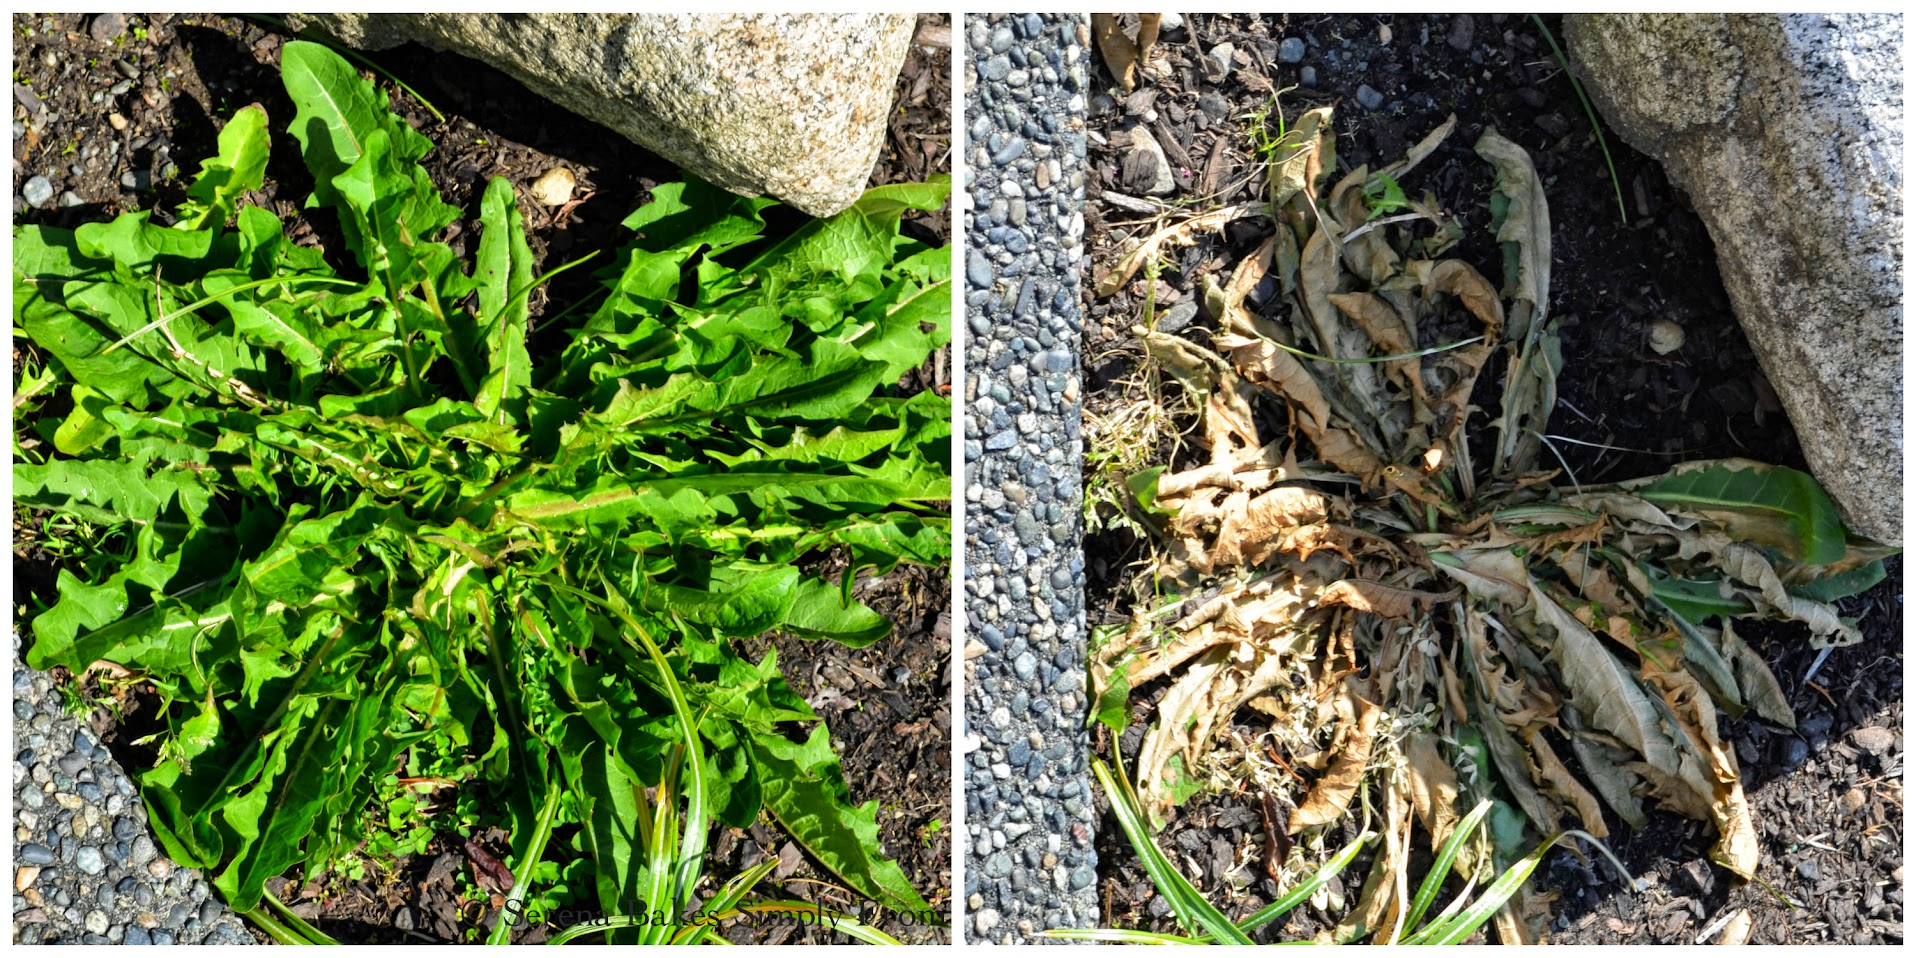 Homemade-All-Natural-Inexpensive-Weed-Killer-Weeds.jpg